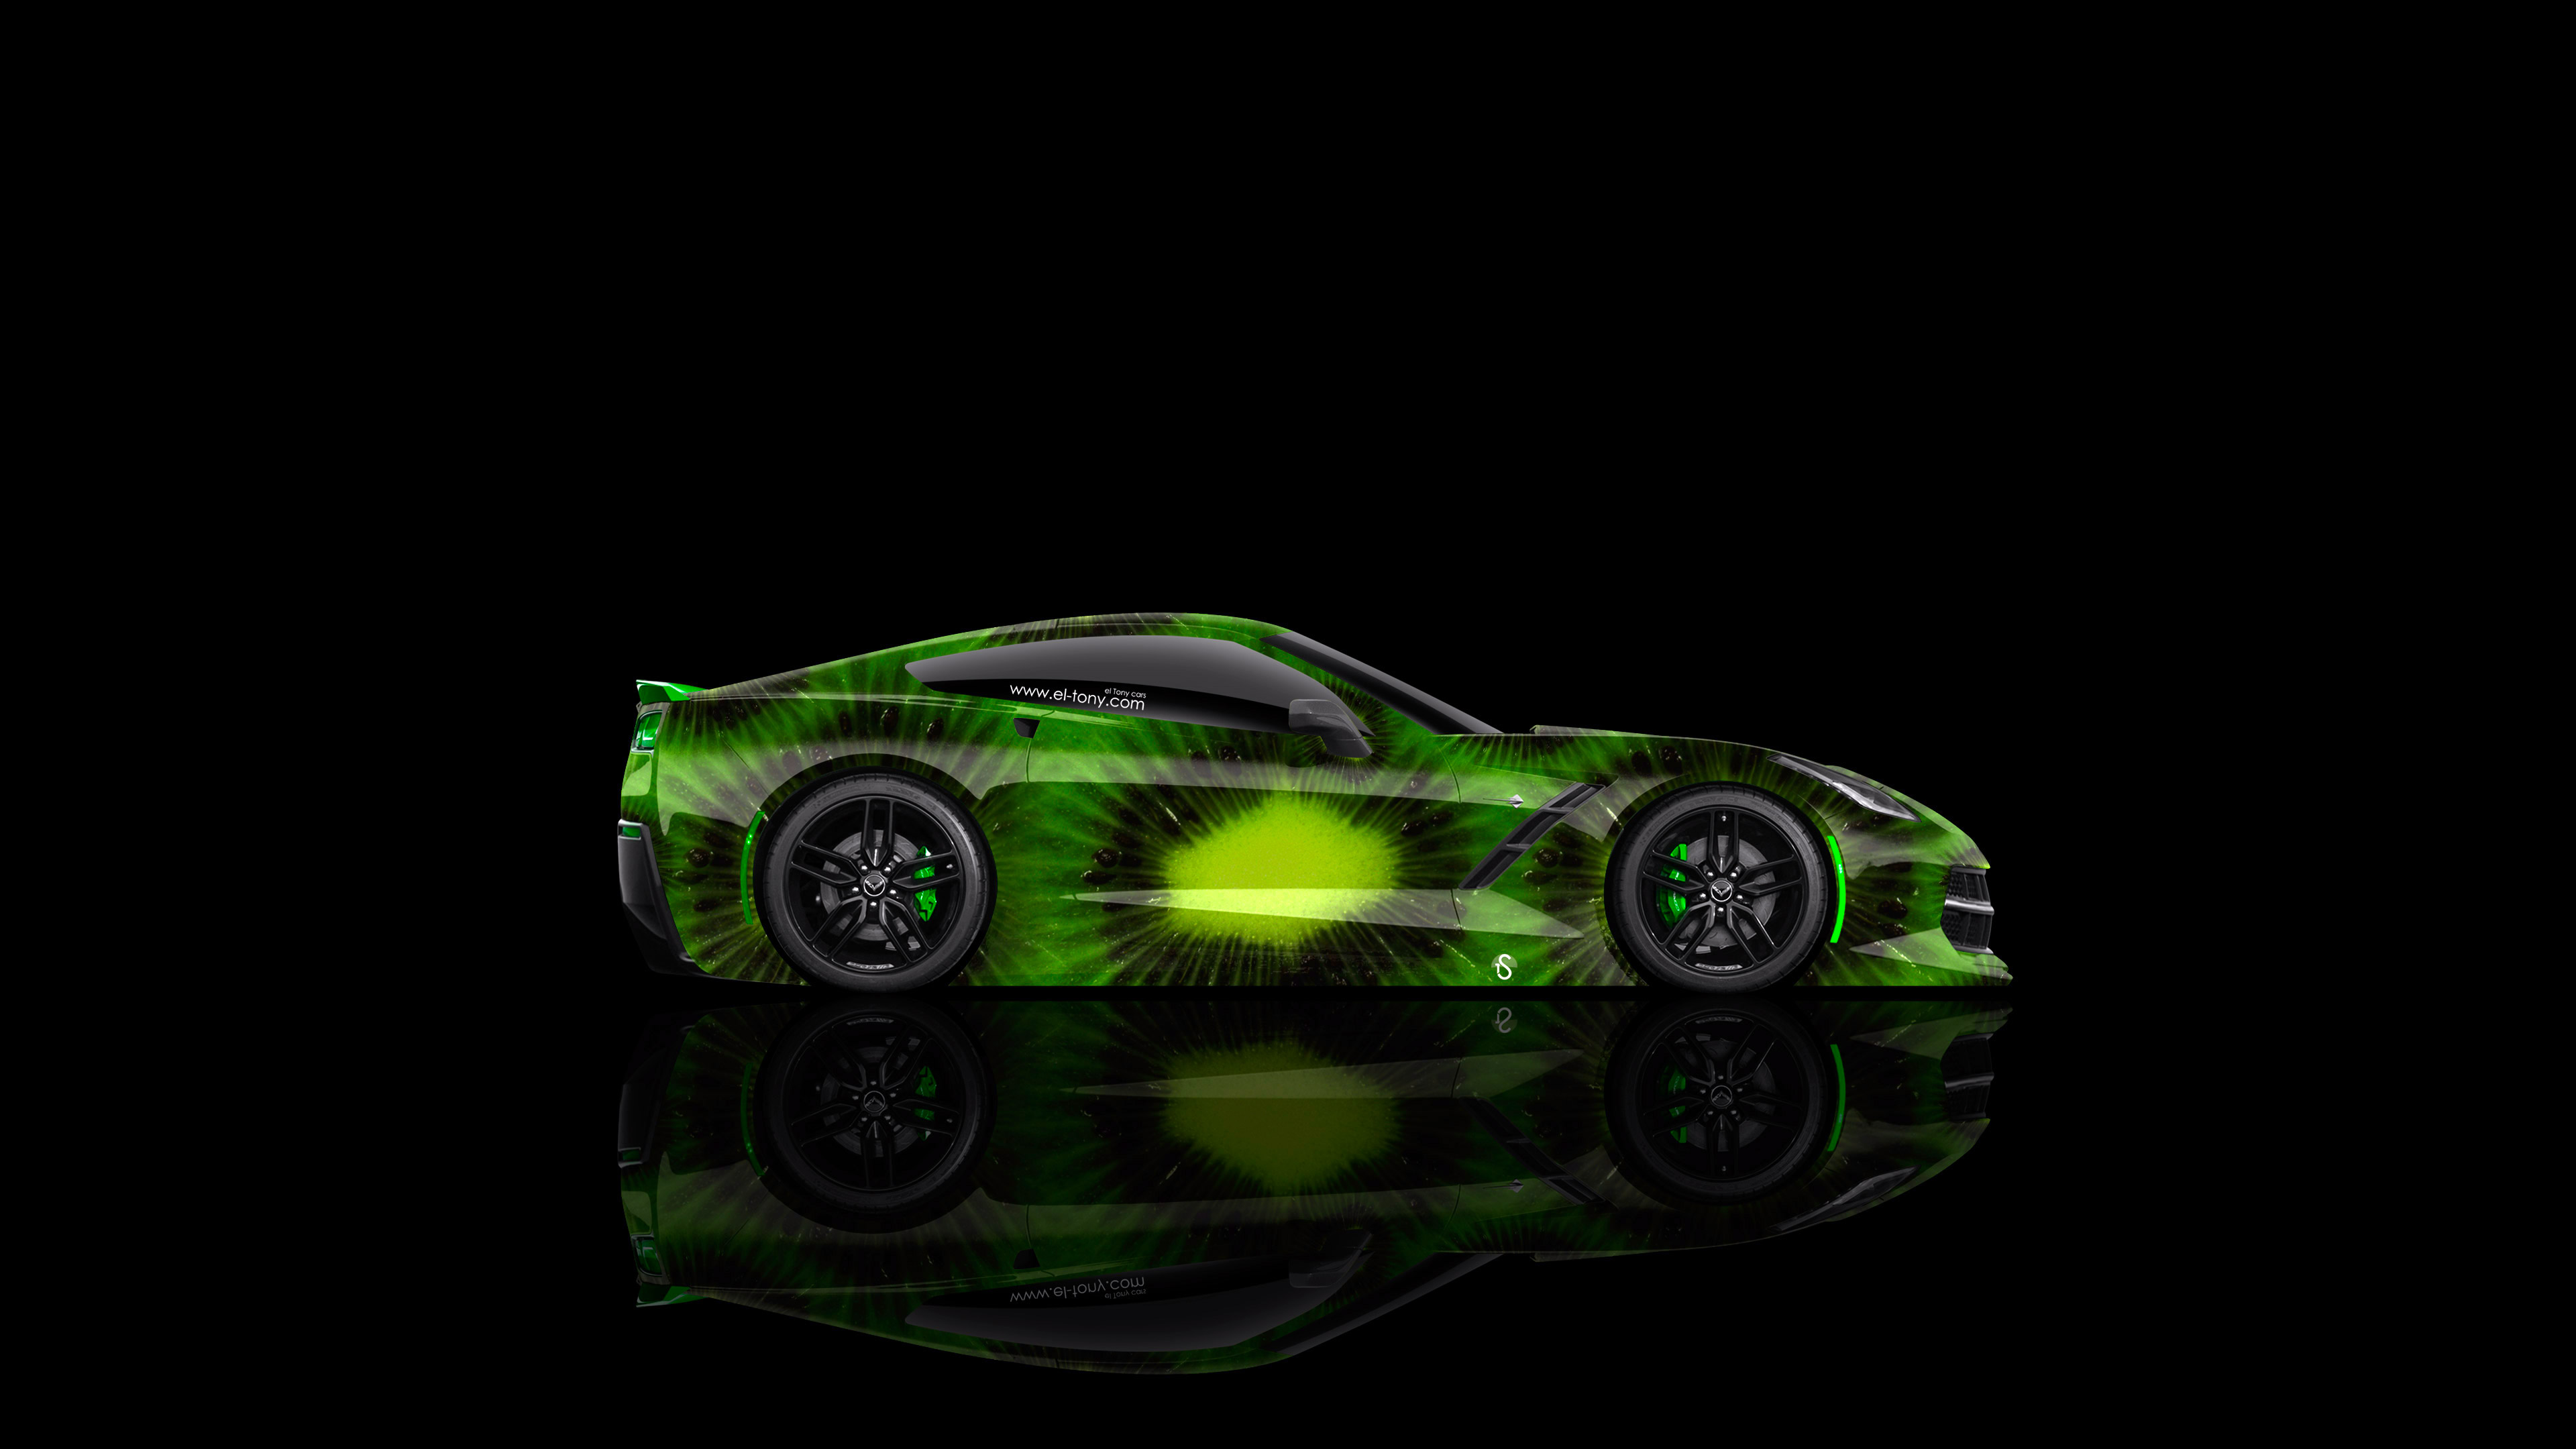 Chevrolet Corvette Stingray C7 Side Kiwi Aerography Car